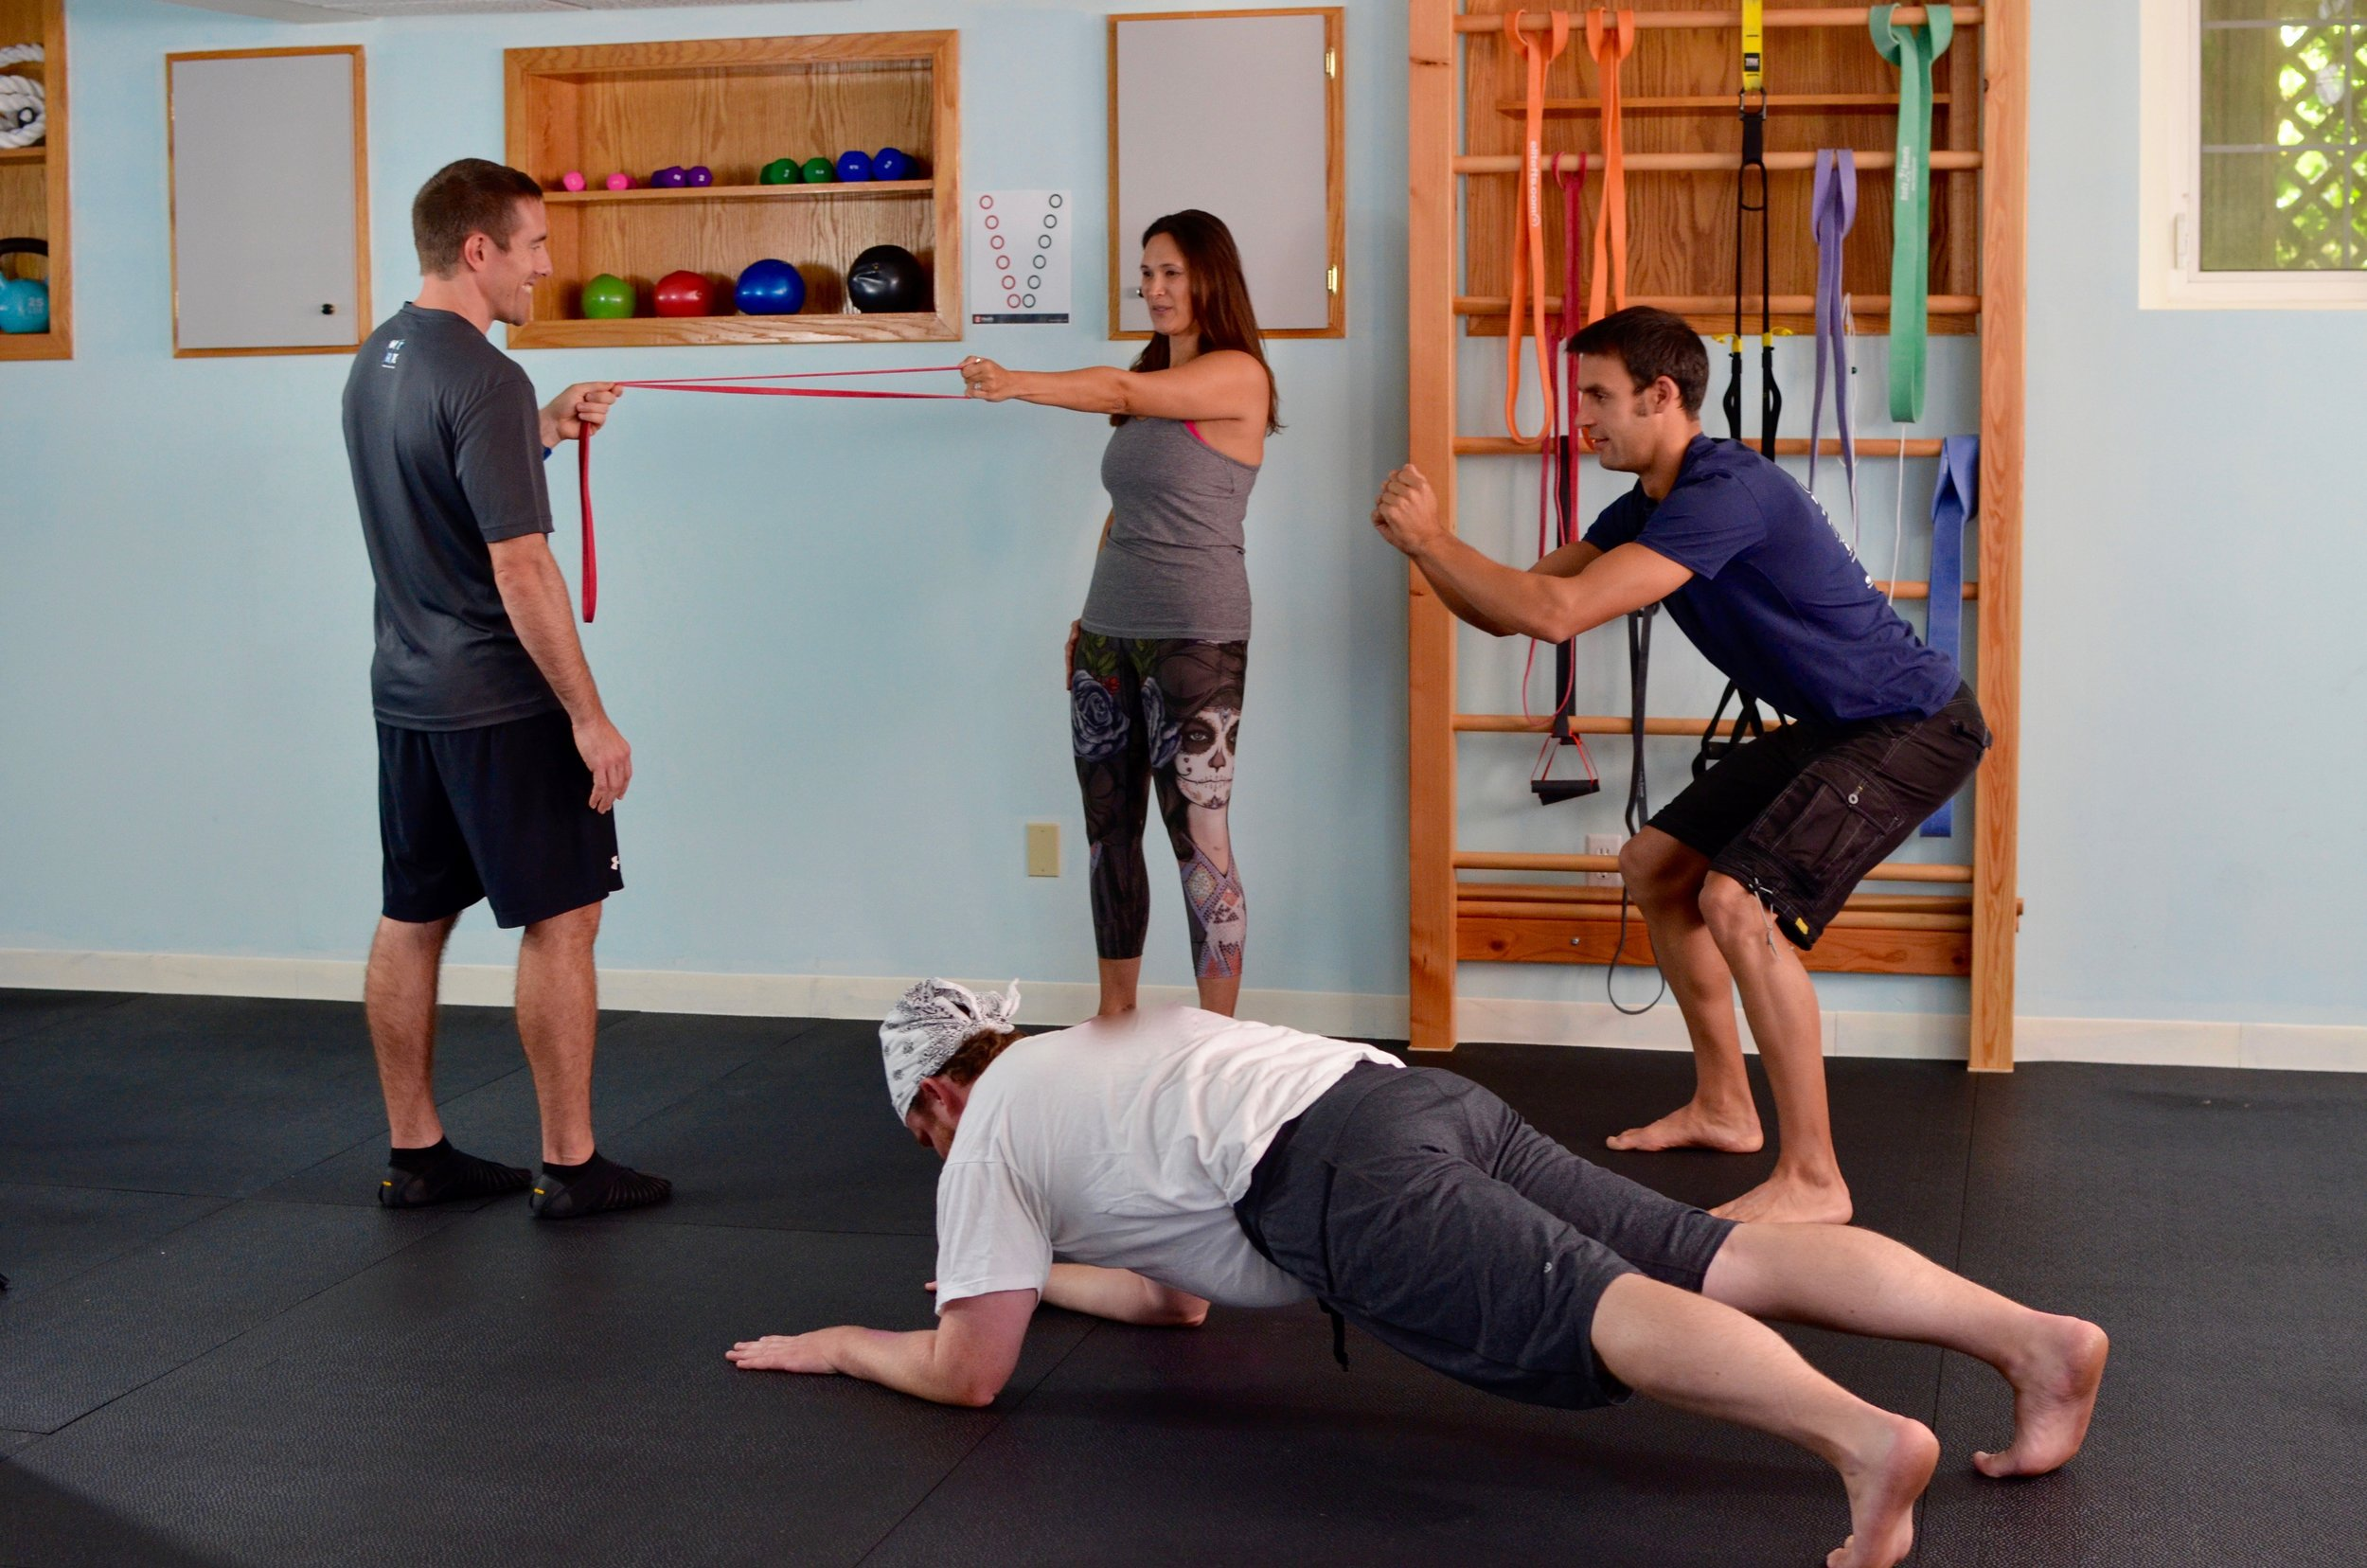 If you're looking to change your body and lose weight, Matrix Personalized Fitness offers small group classes at affordable rates in East Greenwich, RI.